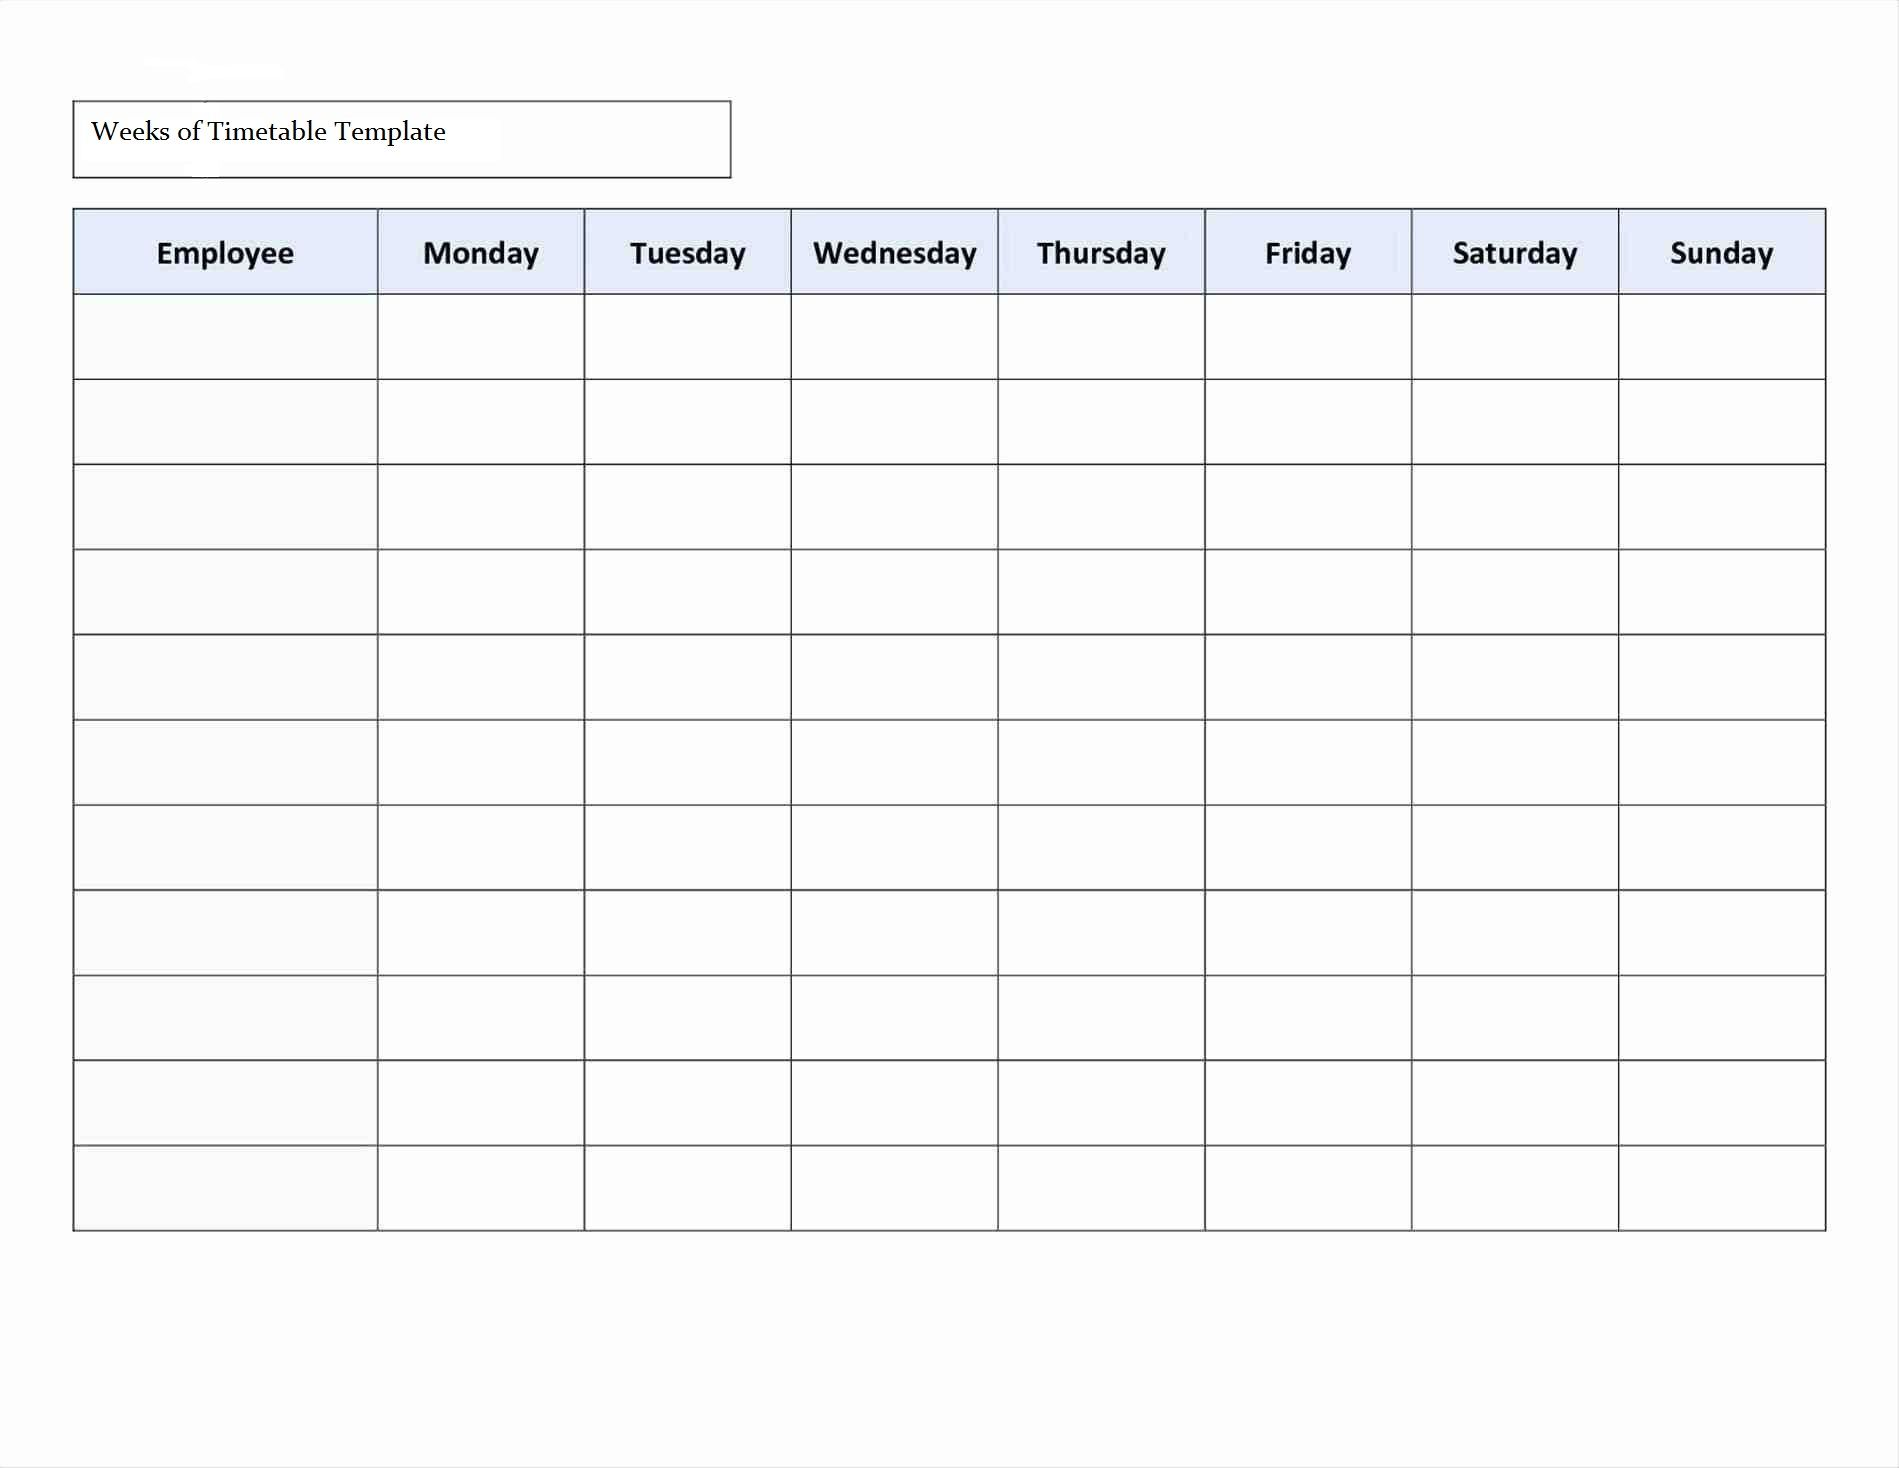 Timetable Schedule Template Excel